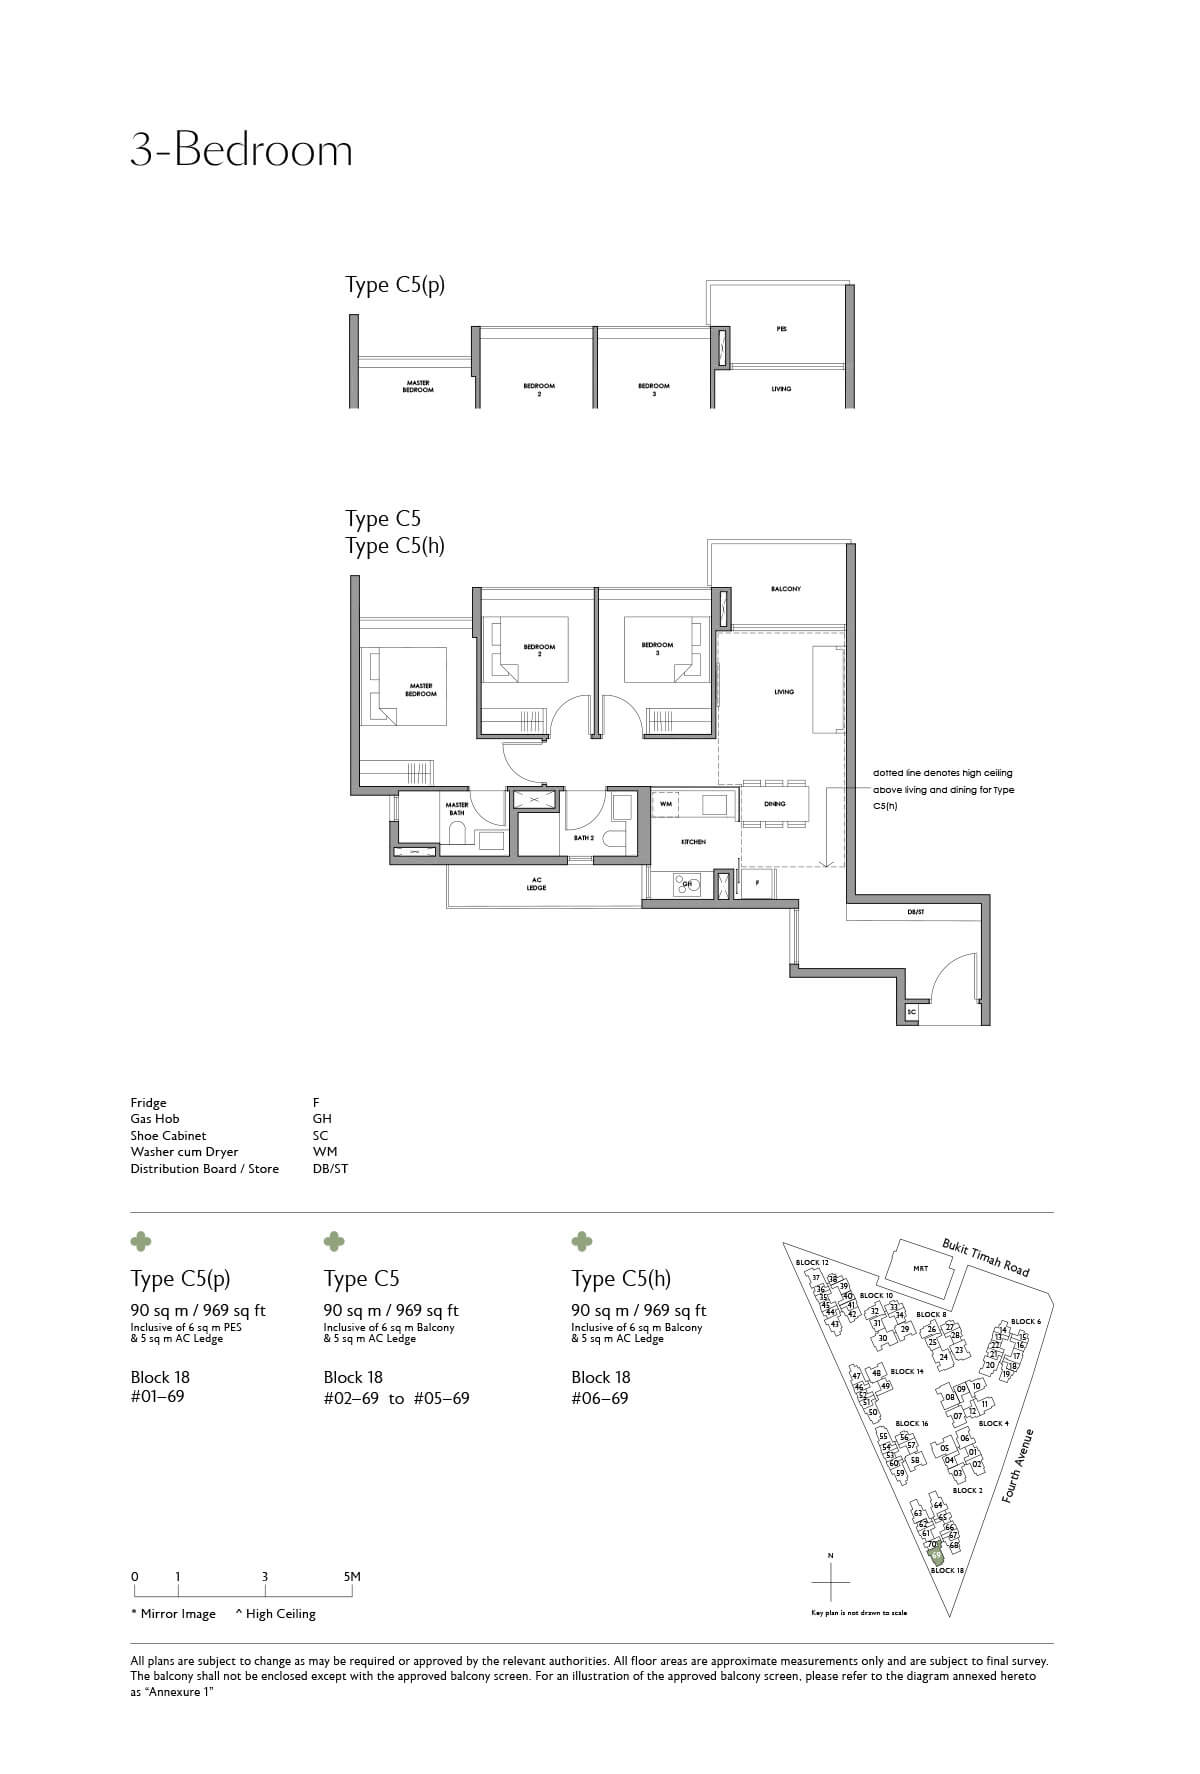 Fourth Avenue Residences Floor Plan 3 Bedroom Type C5